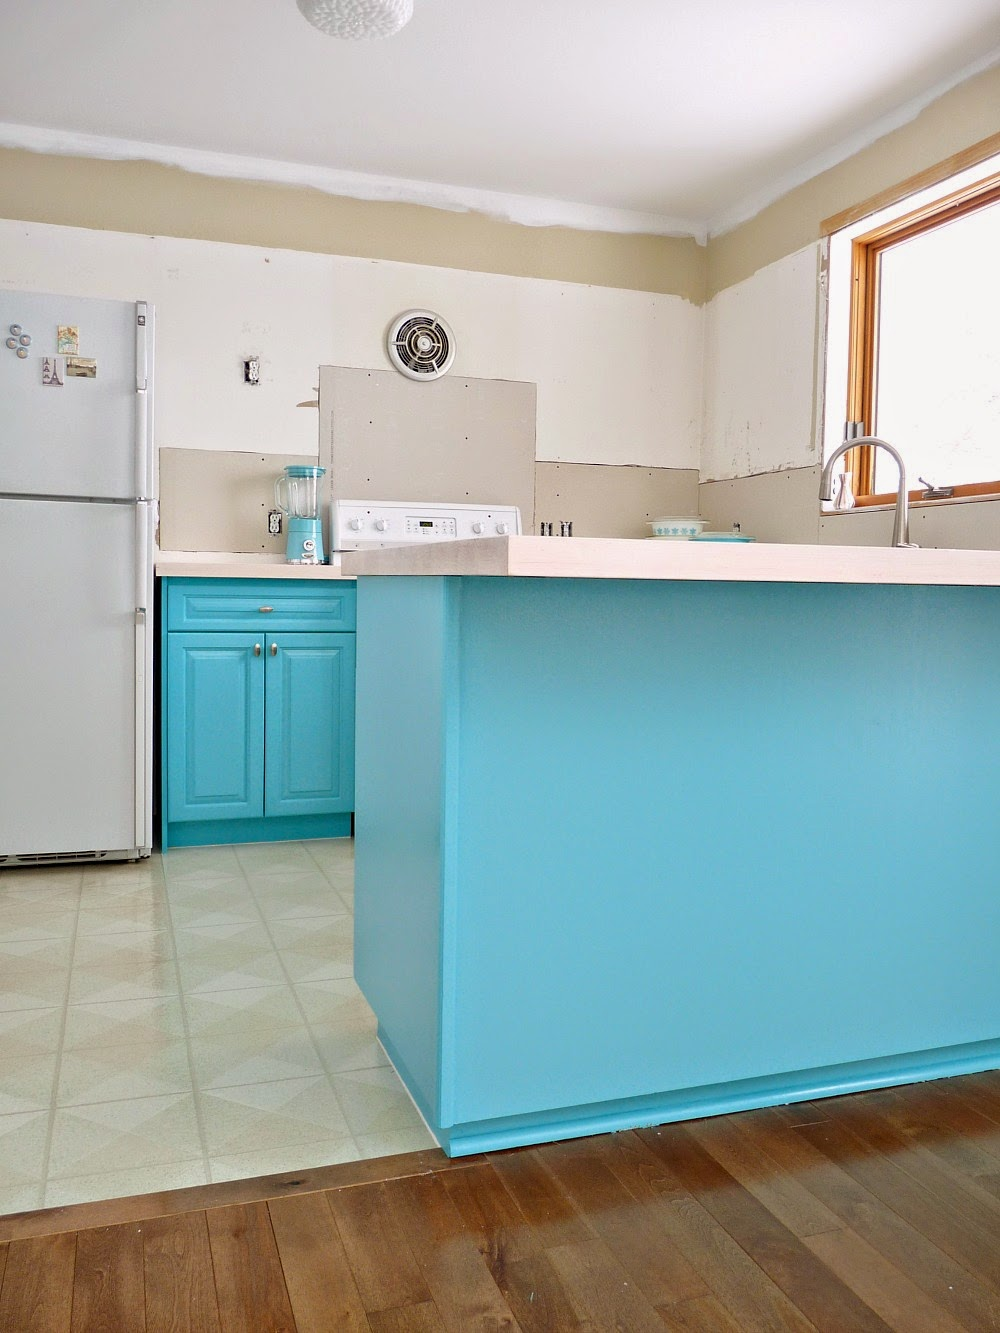 kitchen progress turquoise cabinets turquoise kitchen cabinets Kitchen Progress Turquoise Cabinets Check